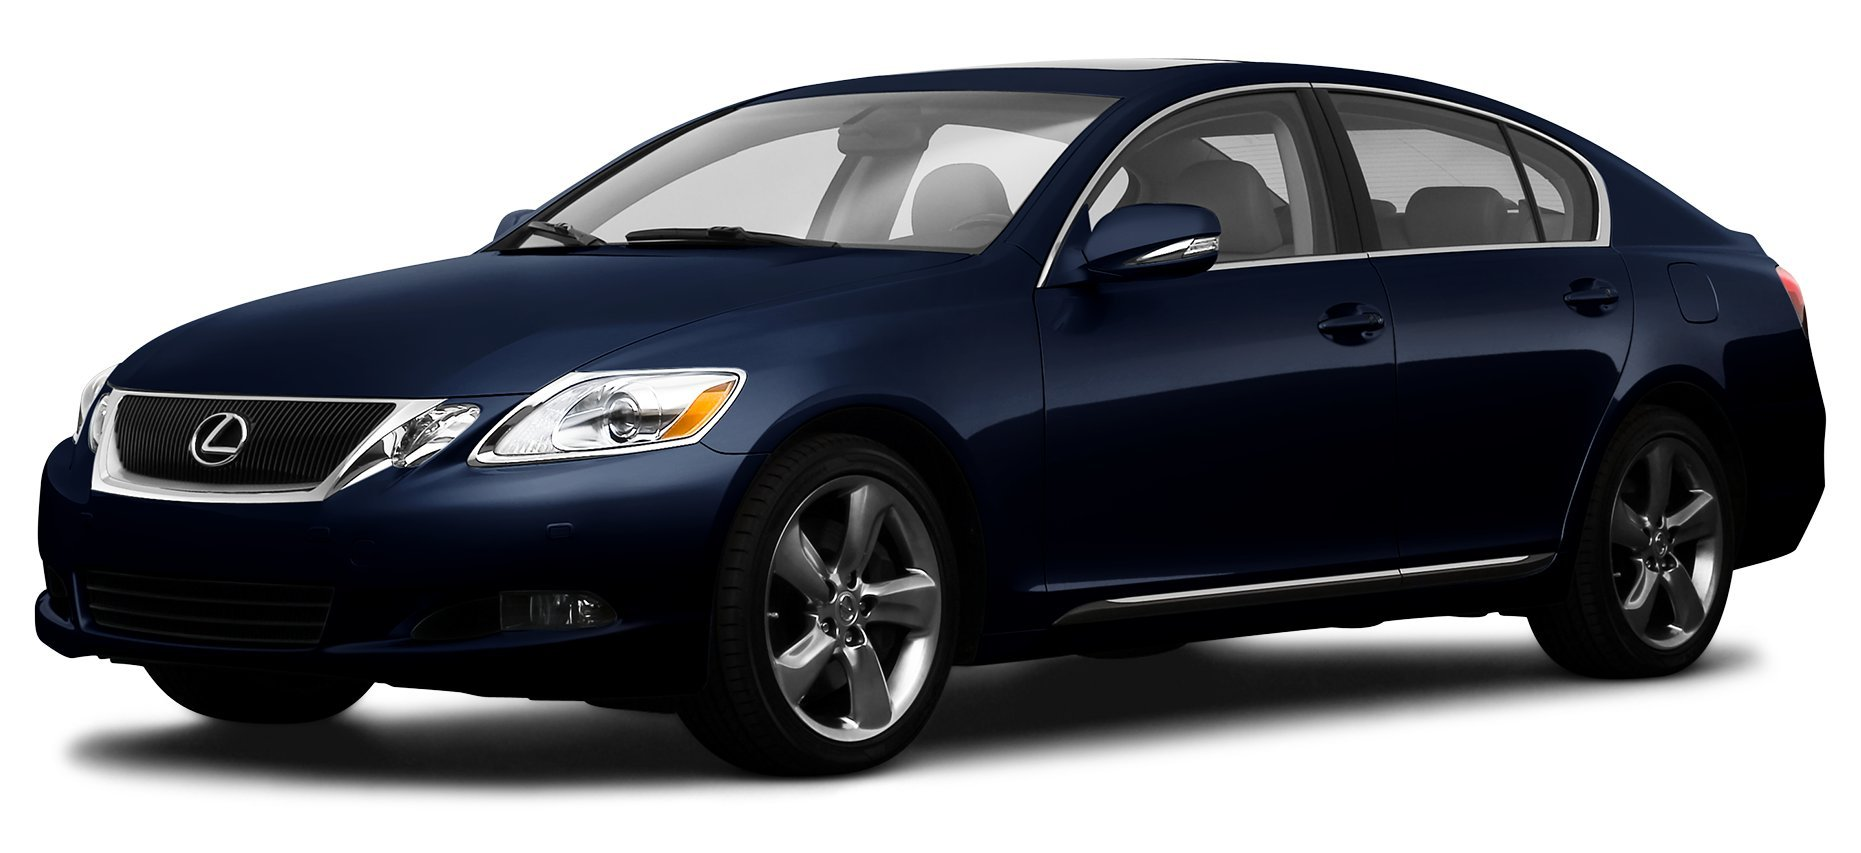 ... 2009 Lexus GS350, 4-Door Sedan All Wheel Drive ...